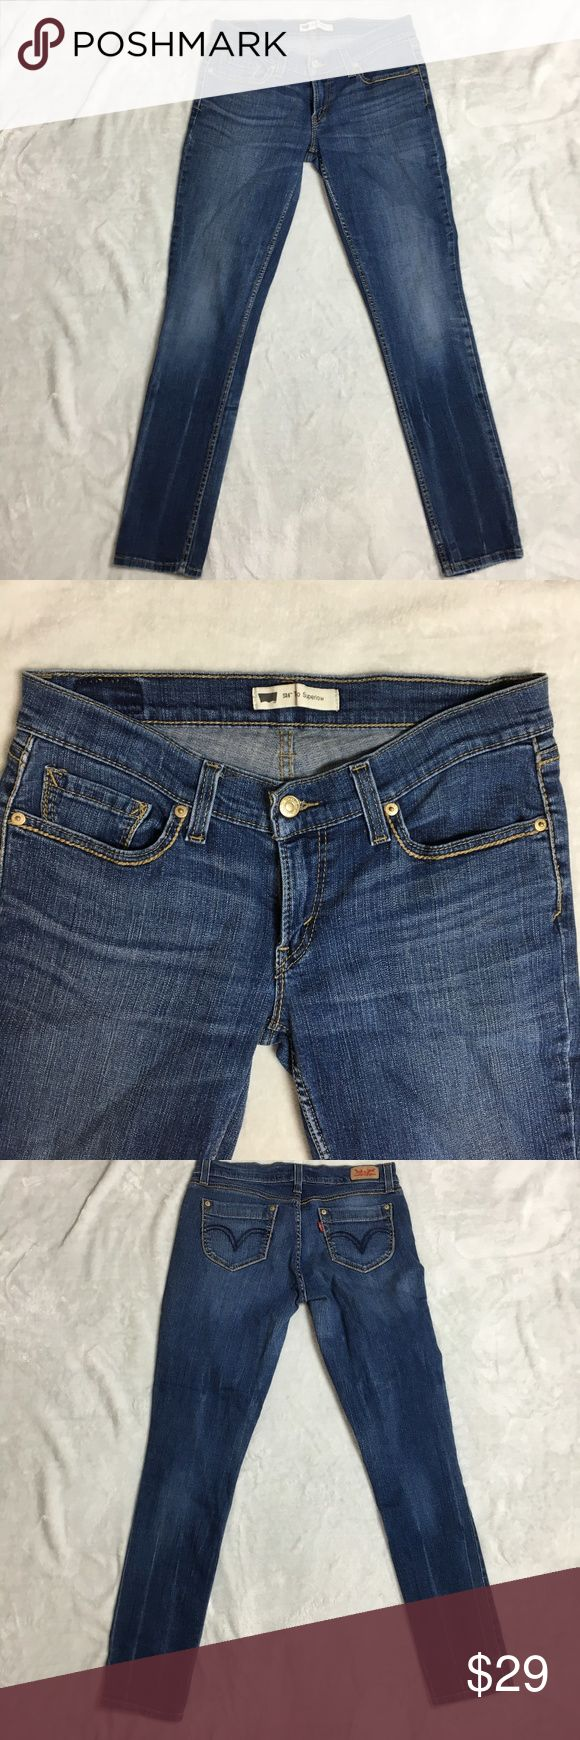 "Levi's Women's 524 Too Superlow Skinny Jeans Levi's Women's 524 Too Superlow Skinny Jeans Dark Wash Disttresed Sz 28 or 30 there is no size tag so I guess it might be 28 or 30 please check the measurement for better size reference waist: 32"" rise : 9"" inseam : 31""  in great condition, please see pictures for condition details  if you need more information please feel free to ask Levi's Jeans Skinny"